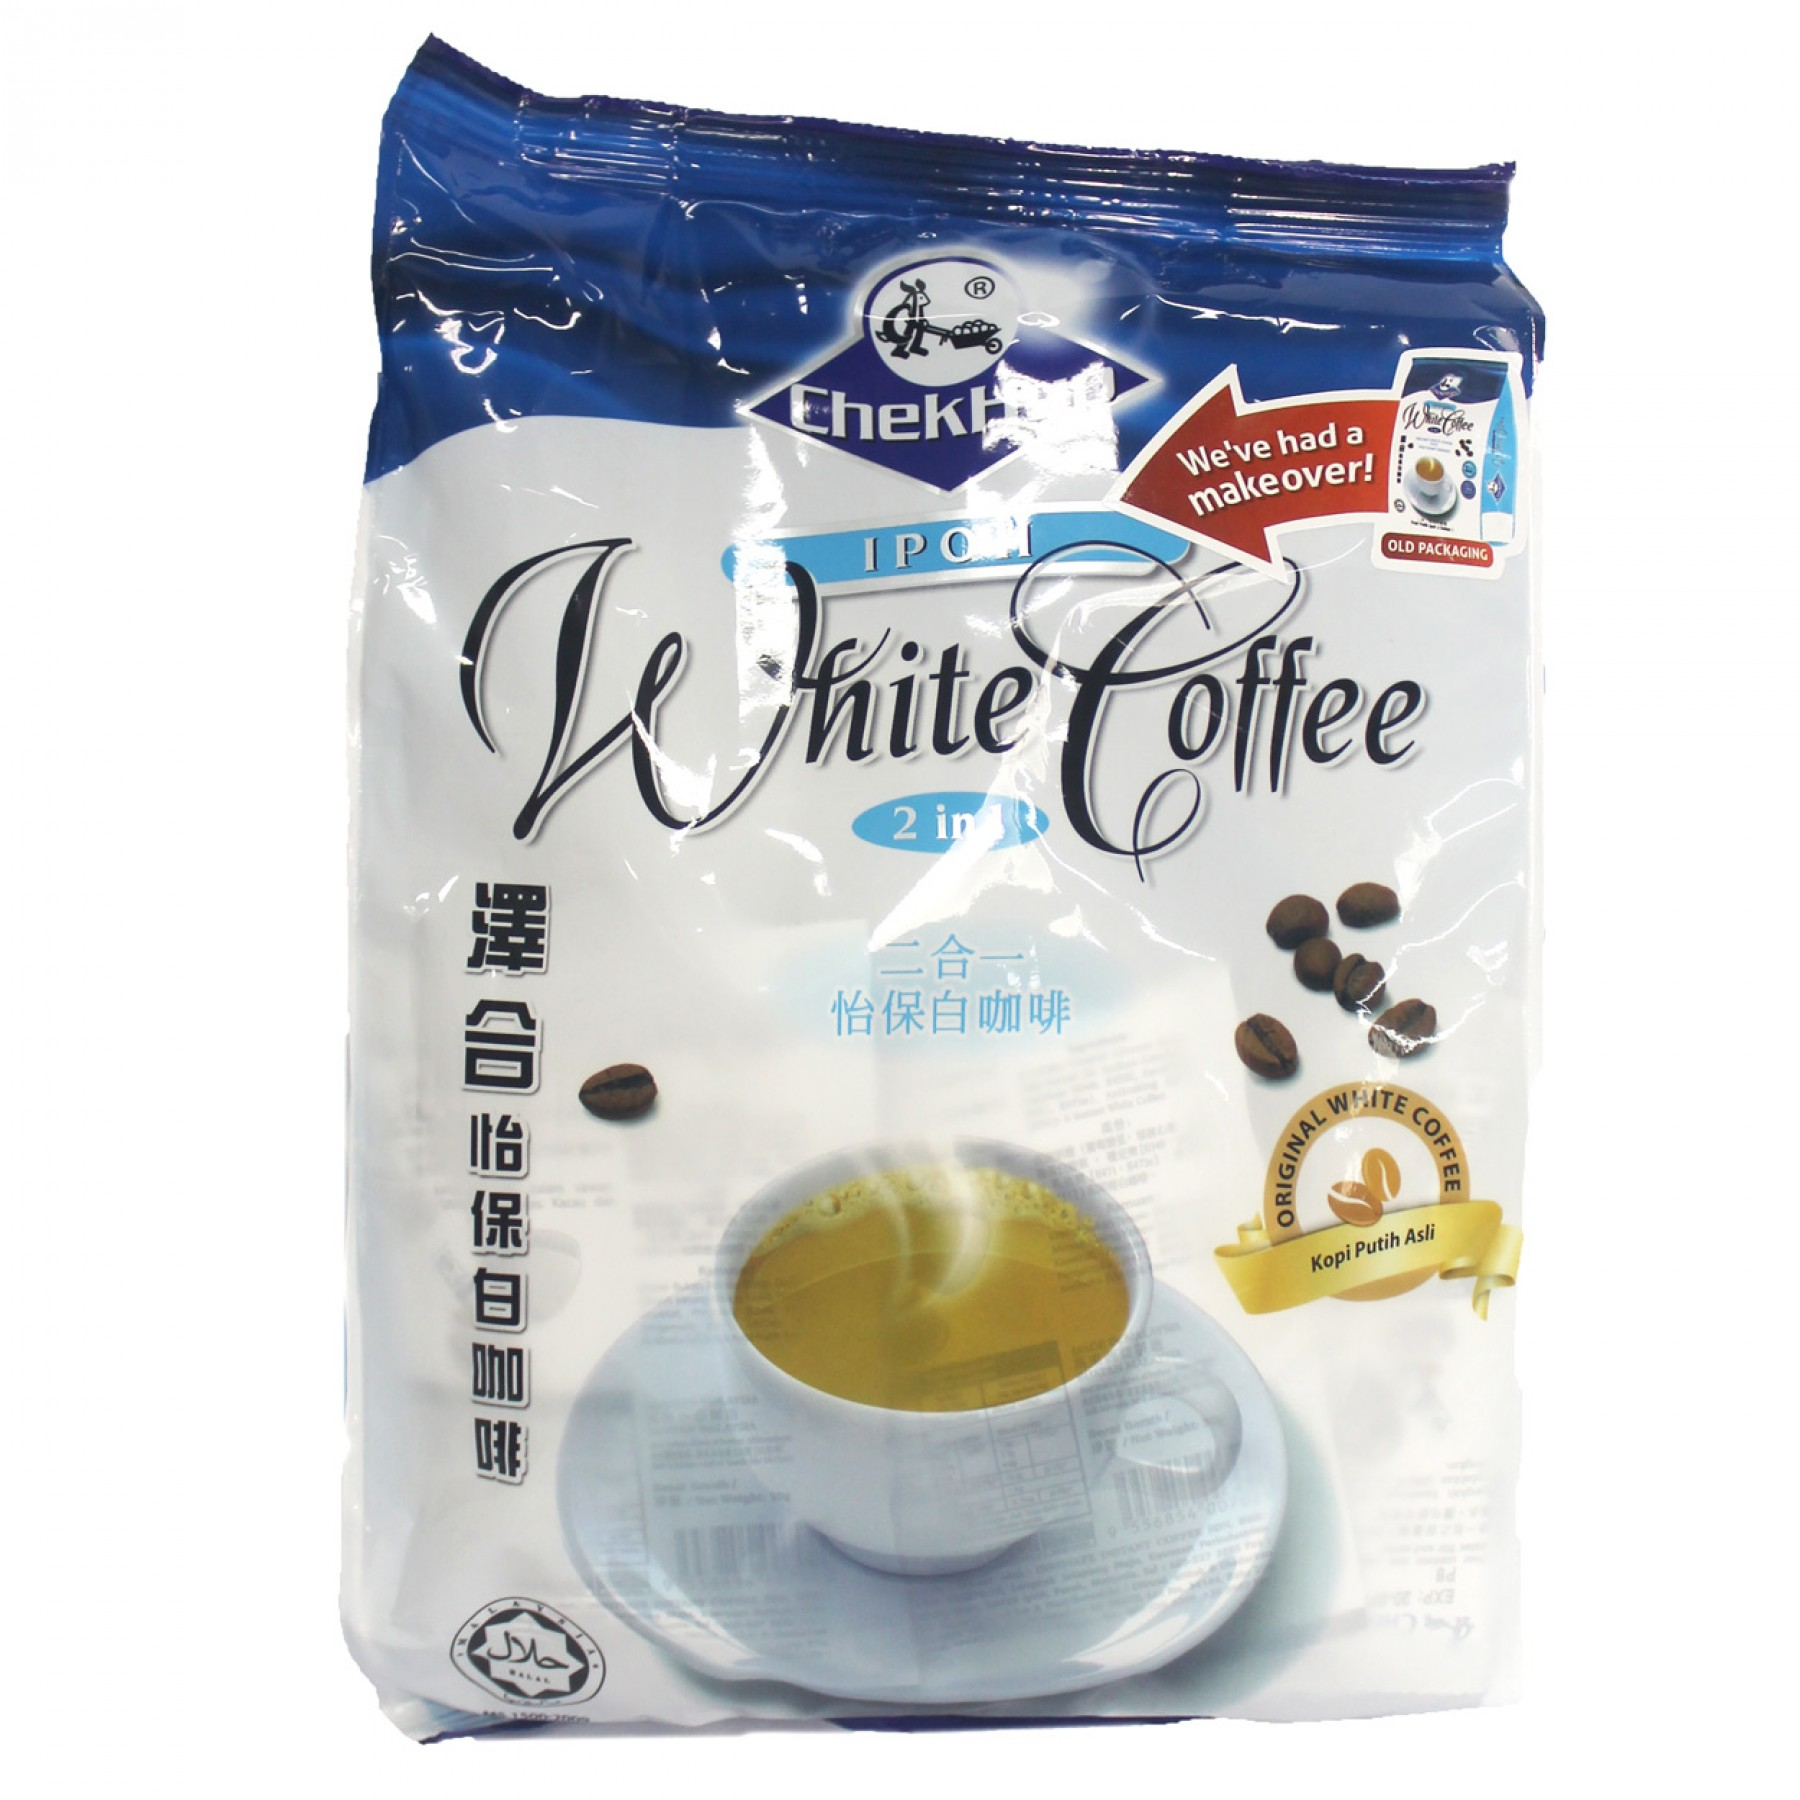 ... Chek Hup White Coffee 2 in 1 Loading zoom